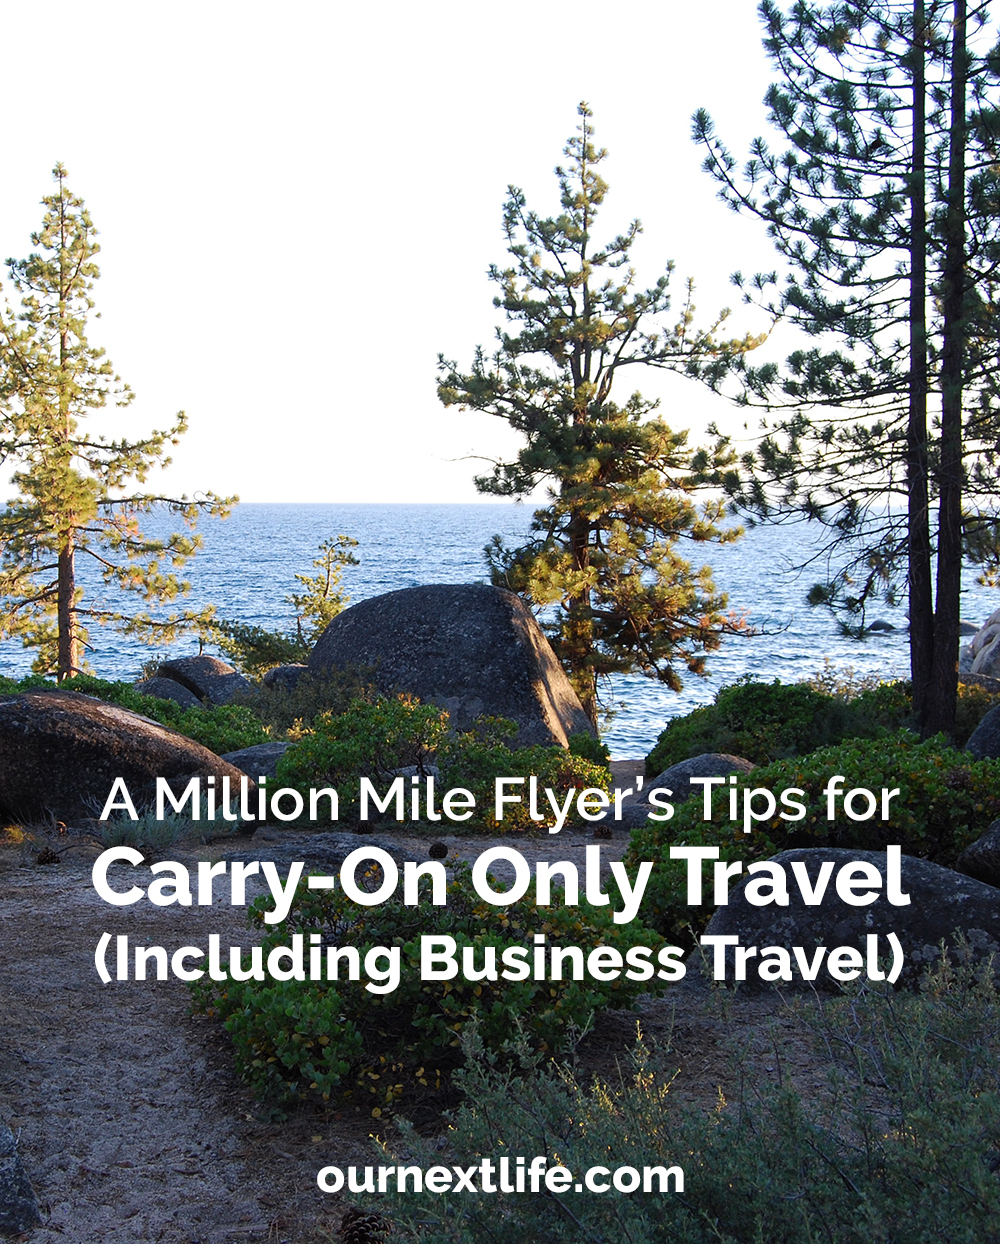 A million mile flyer's tips for carry-on only travel, including business travel // Our Next Life // early retirement, financial independence, adventure, happiness // packing list, RTW travel, what to pack, carry-on packing list